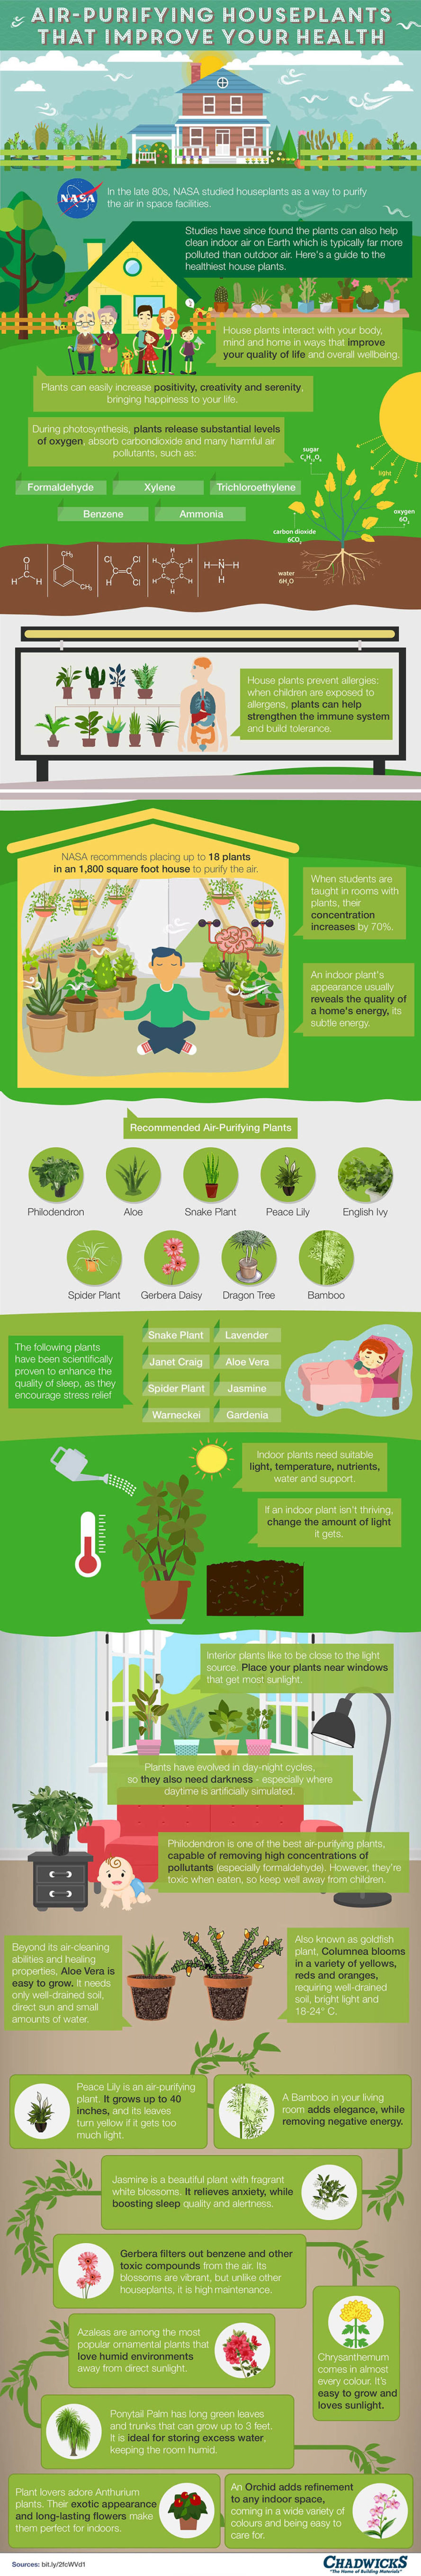 air purifying plants, air purifiers, air purification, pollution, air pollution, NASA, NASA houseplants, NASA plant study, NASA air pollution, infographic